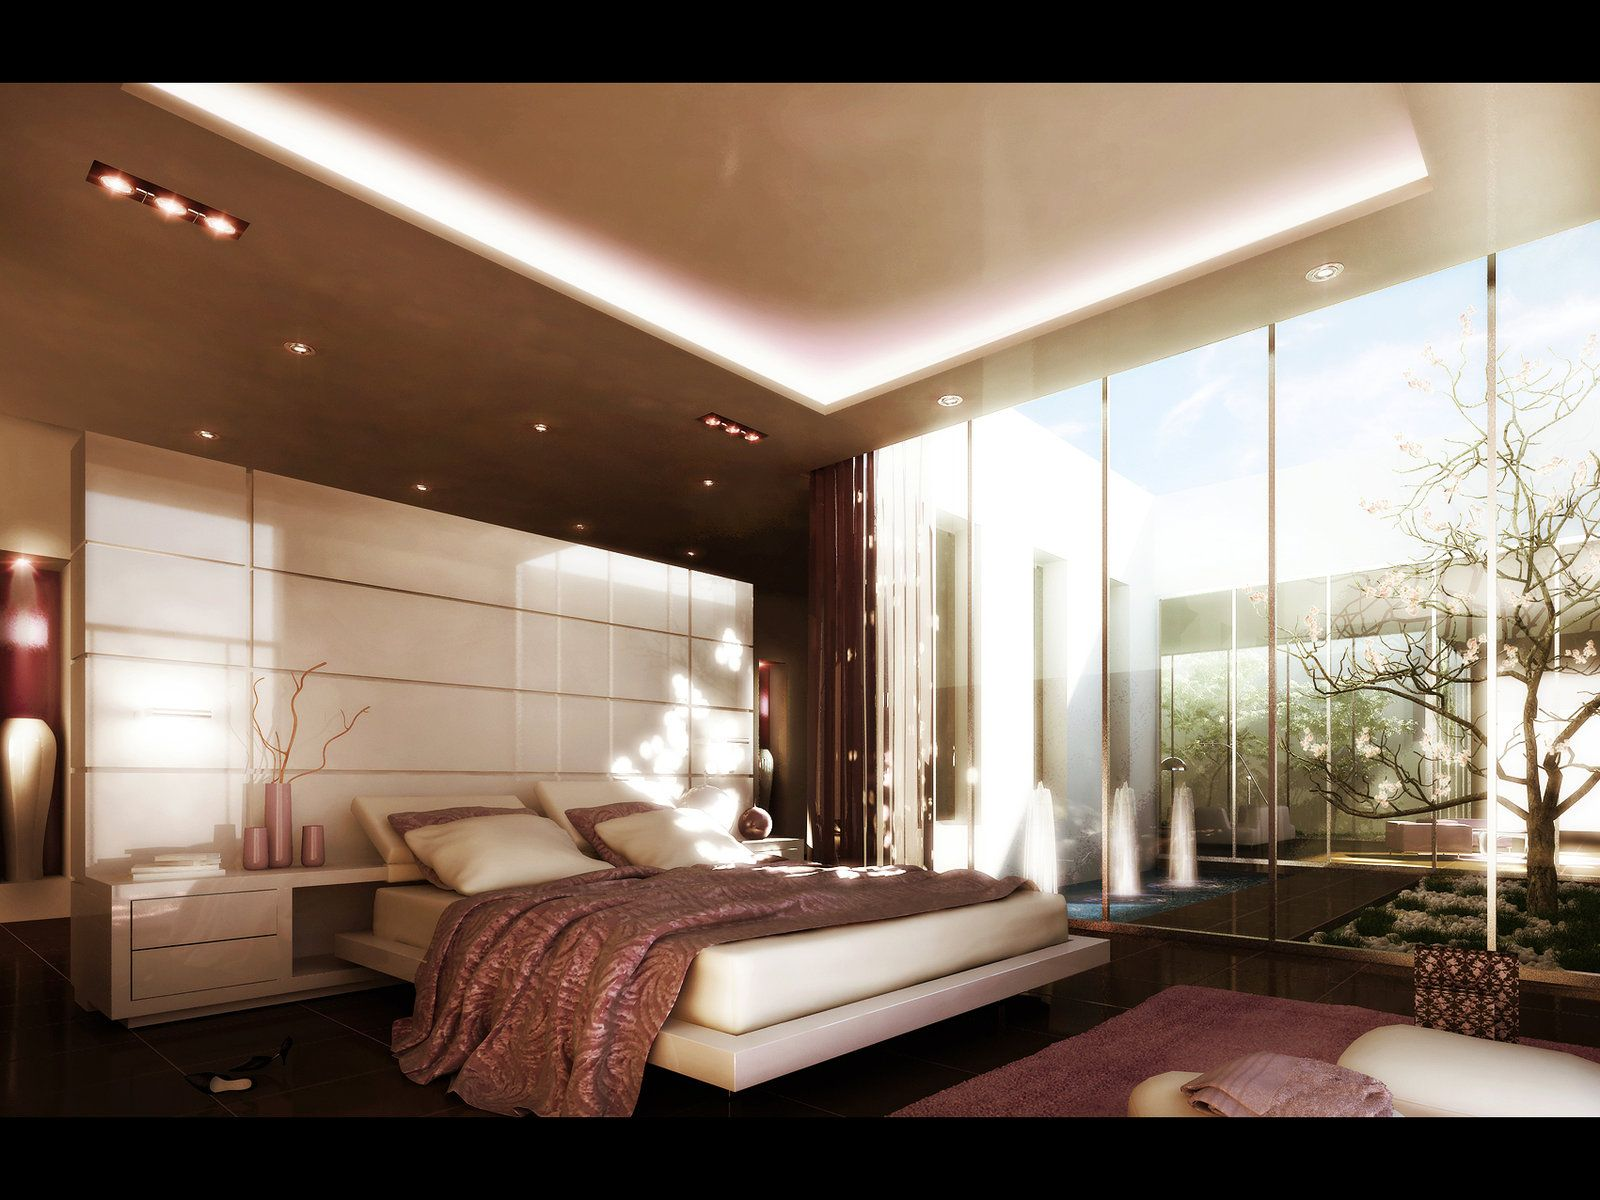 Romantic Bedroom Decorating Ideas Romantic Bedroom